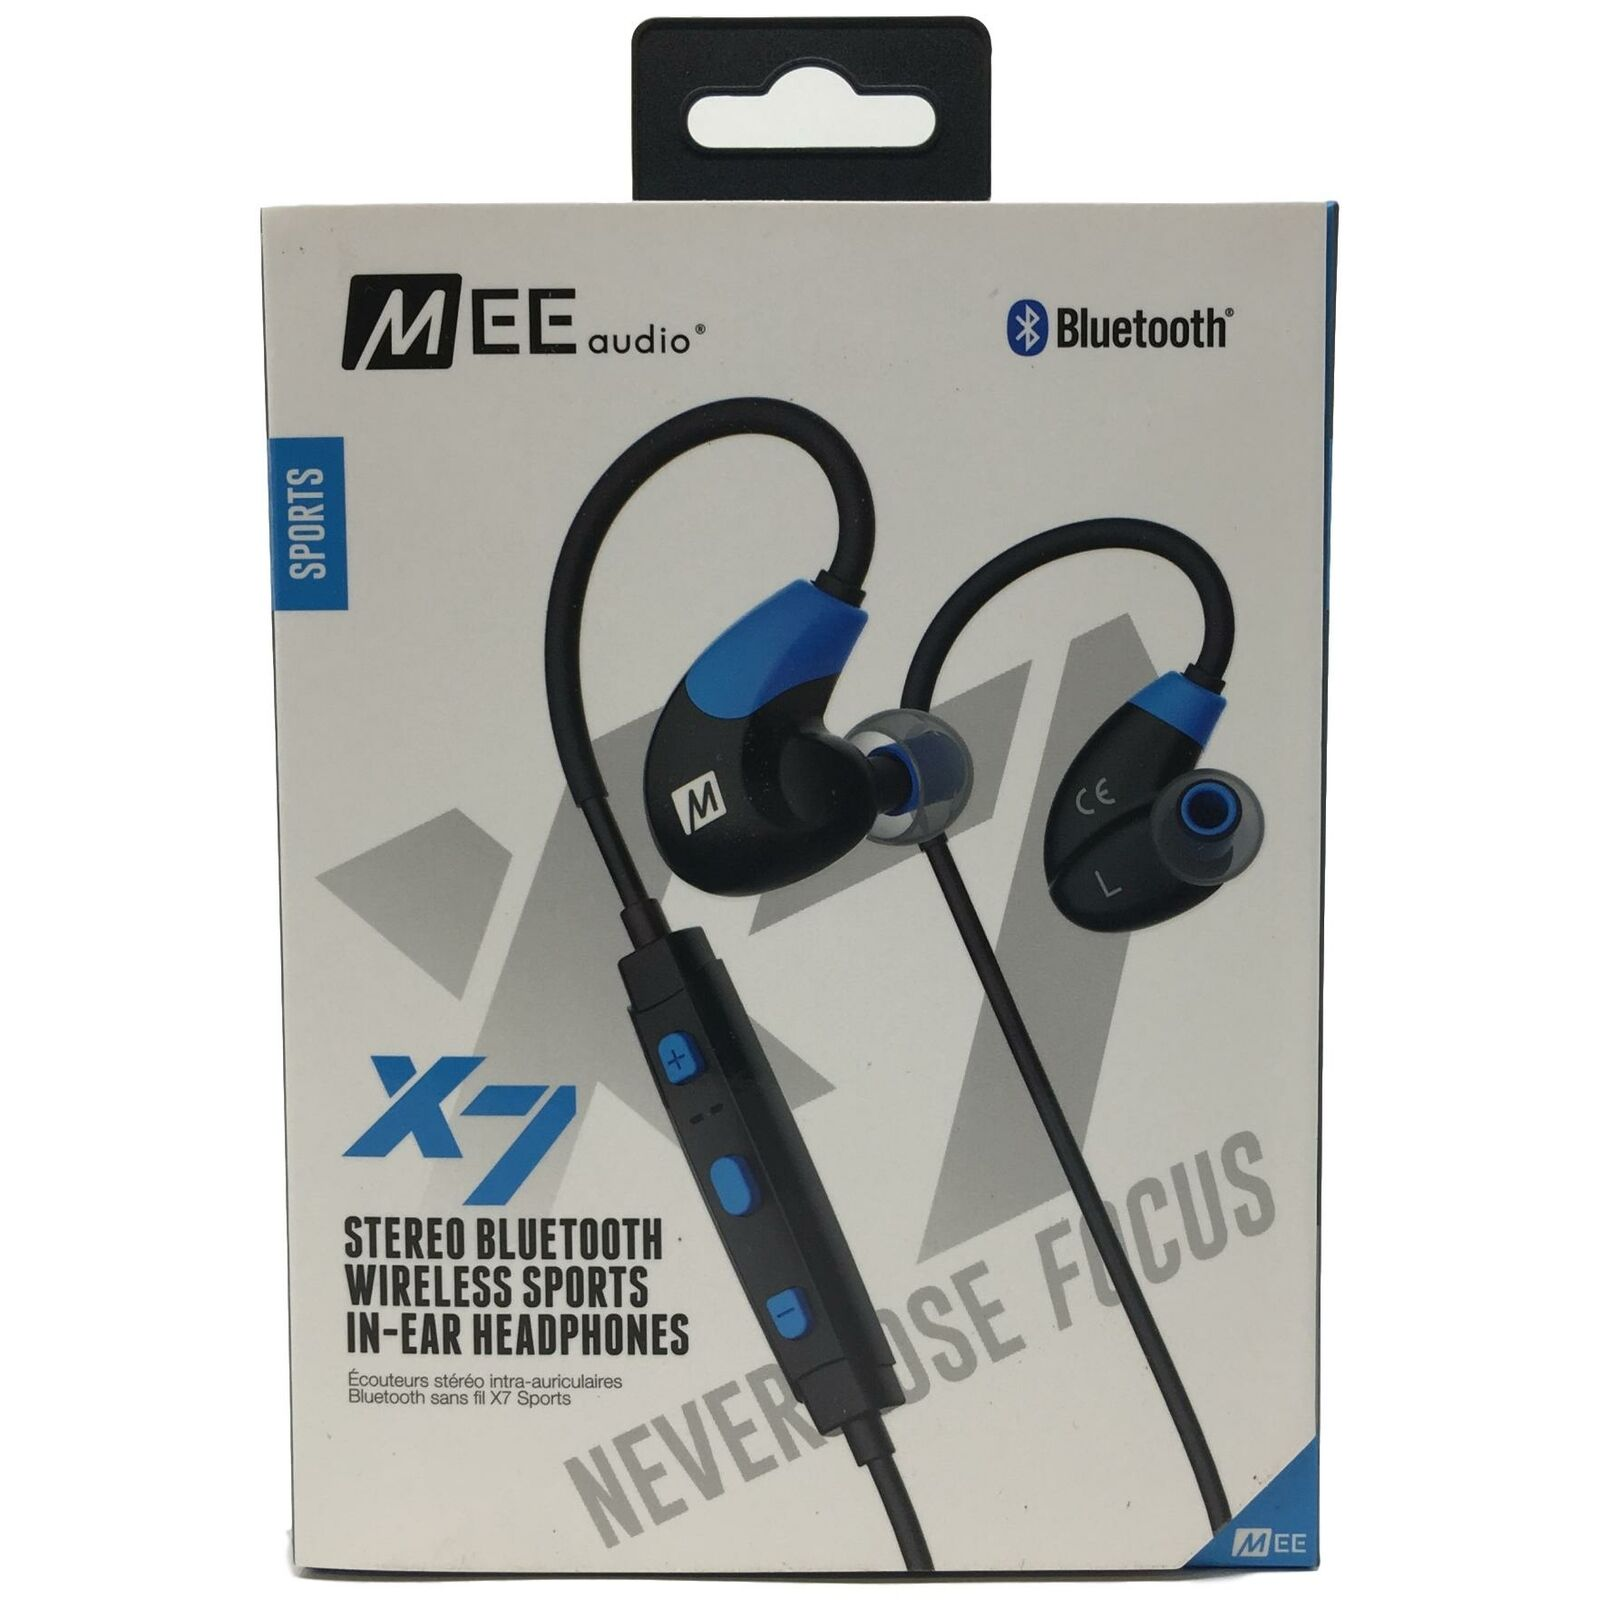 b6f63030bcd Mee Audio X7 Stereo Bluetooth Wireless In-ear Headphones - Blue for ...